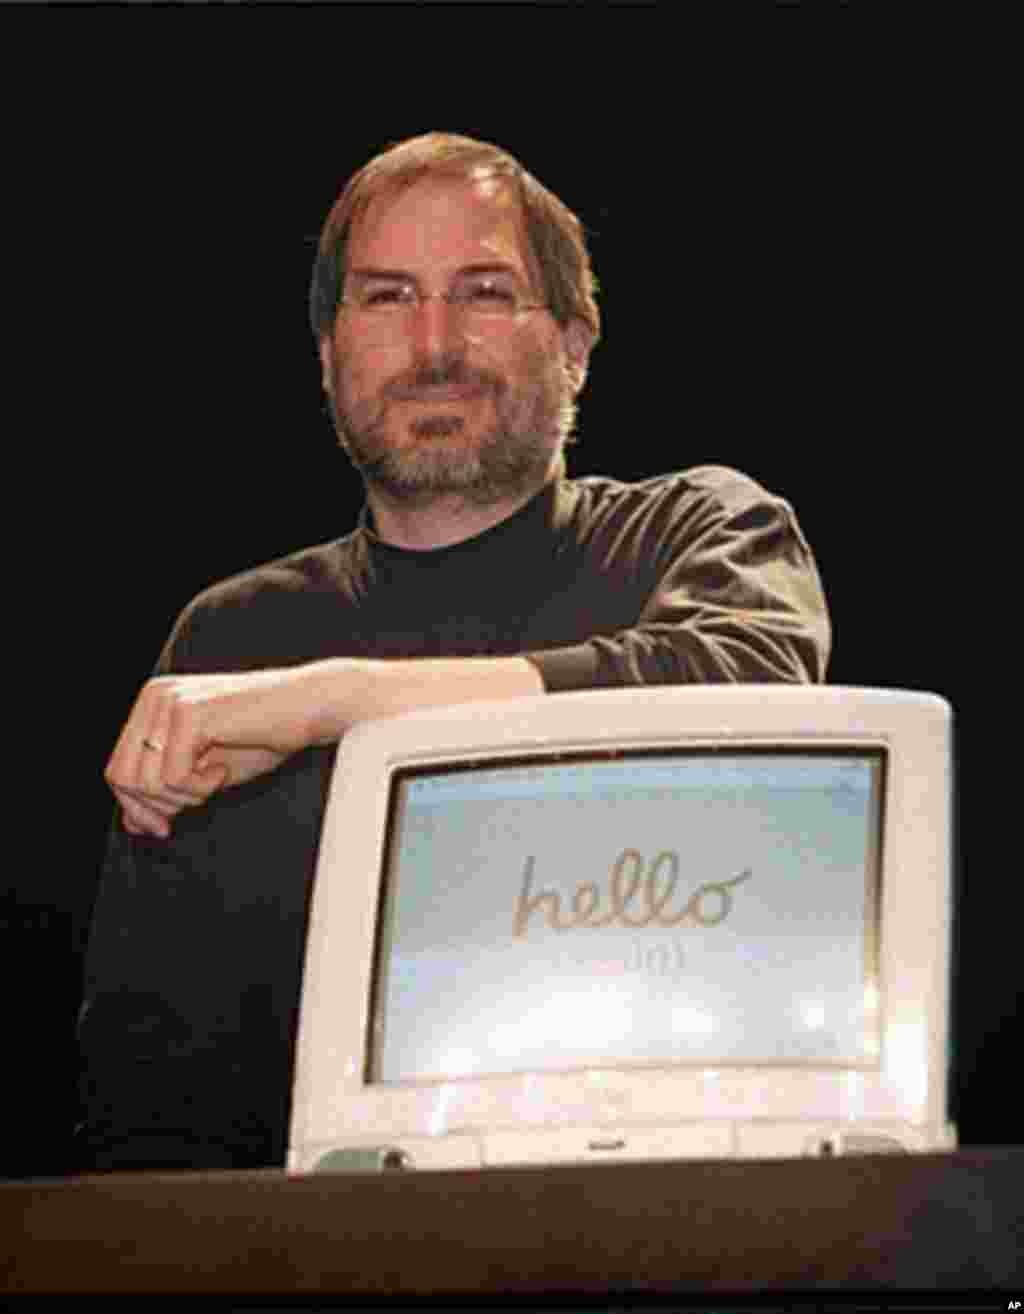 This September 17, 1998 file photo shows Apple co-founder Steve Jobs during a press conference in Paris, France. (AFP)